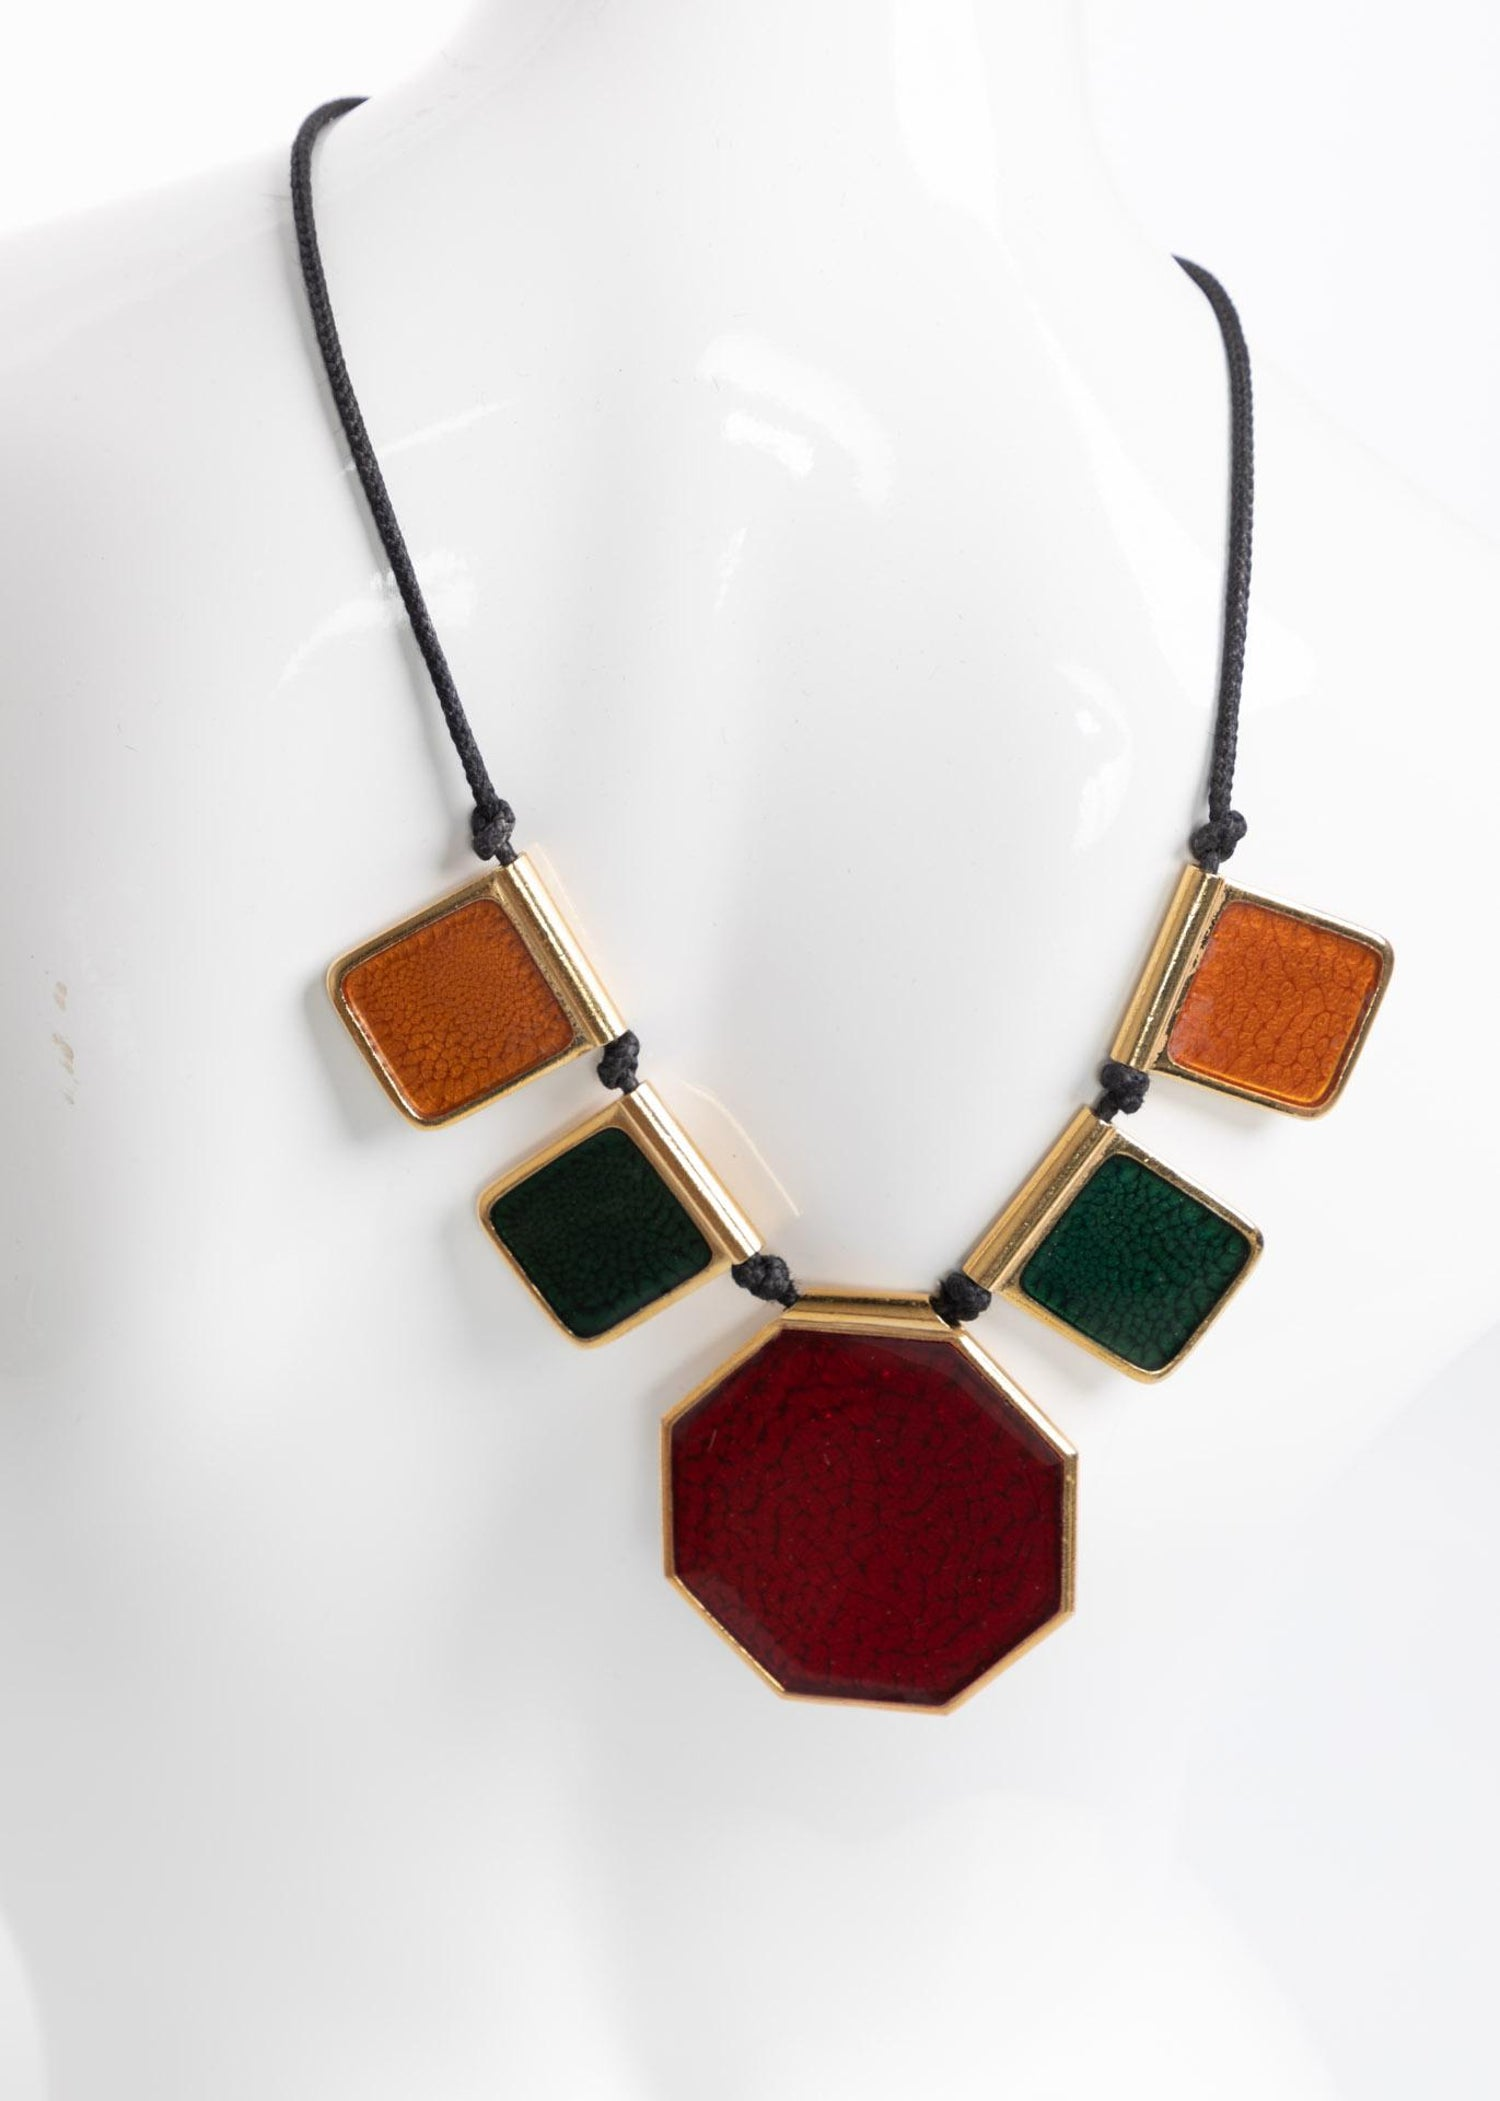 a7f67eb4e9ca9c Yves Saint Laurent Colorful Enamel Gold Limited Edition Necklace YSL, 1970s  For Sale at 1stdibs